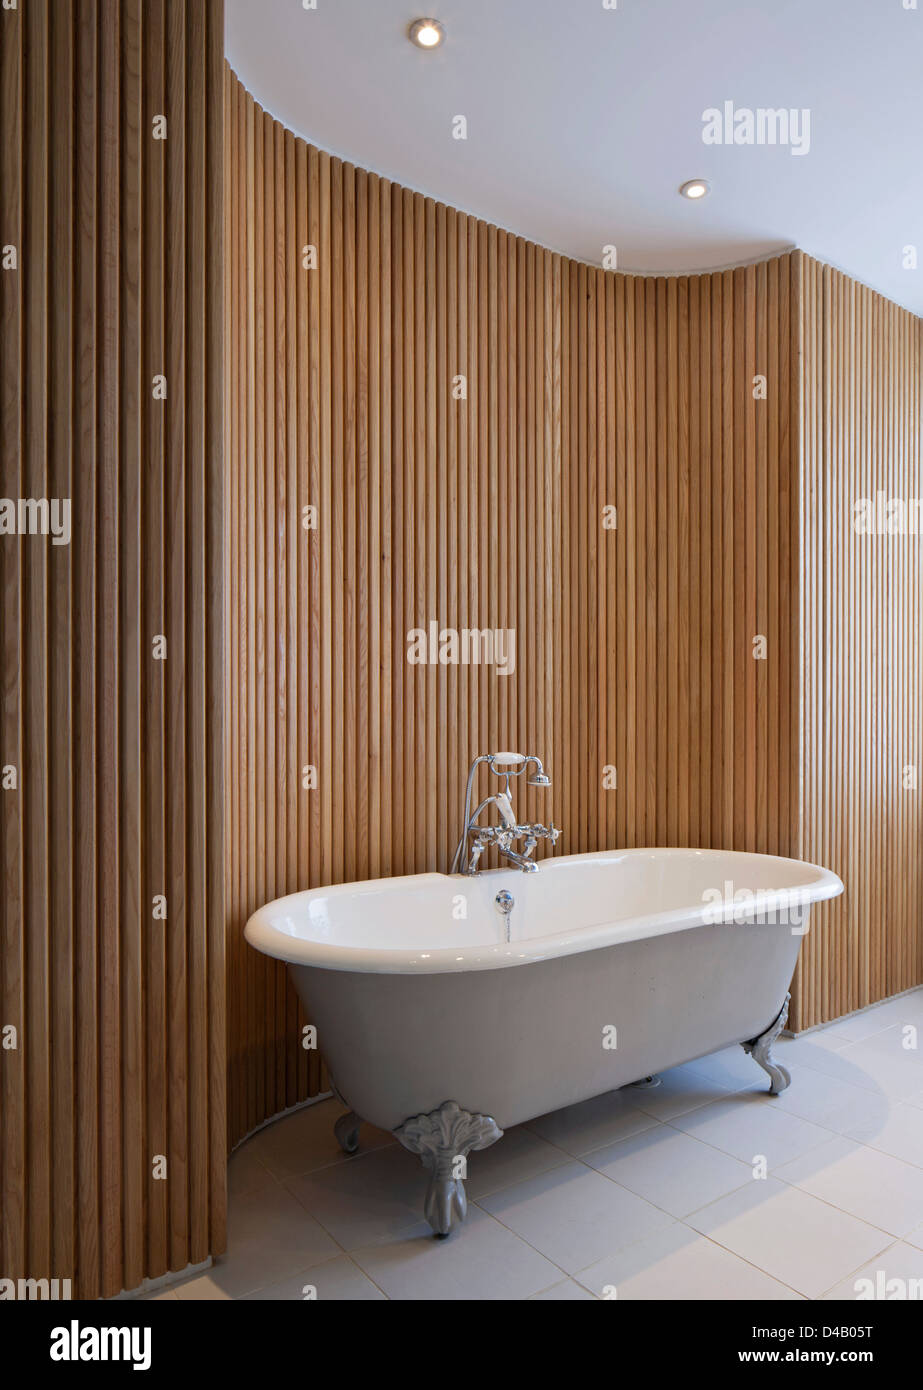 Bathroom Renovation Bathtub Old Fashioned Stock Photos & Bathroom ...